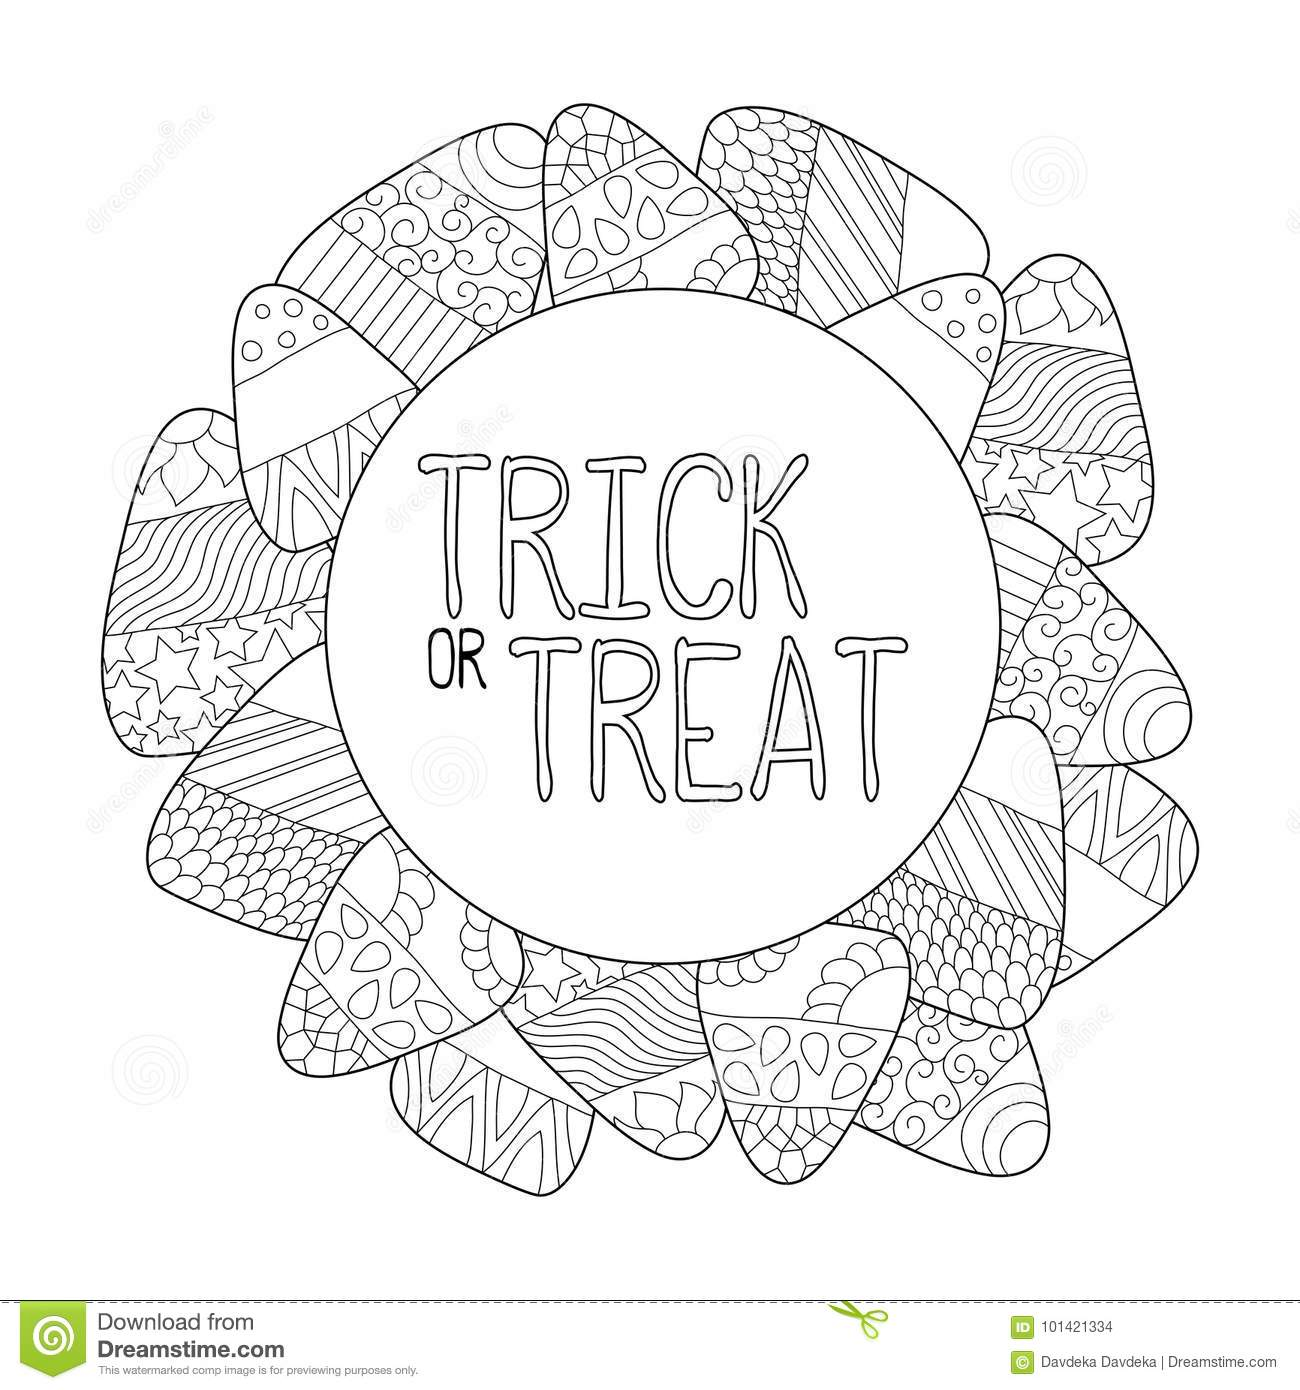 coloring halloween candy corn candy corn holy trinity ideas for church pinterest sketch coloring halloween corn candy